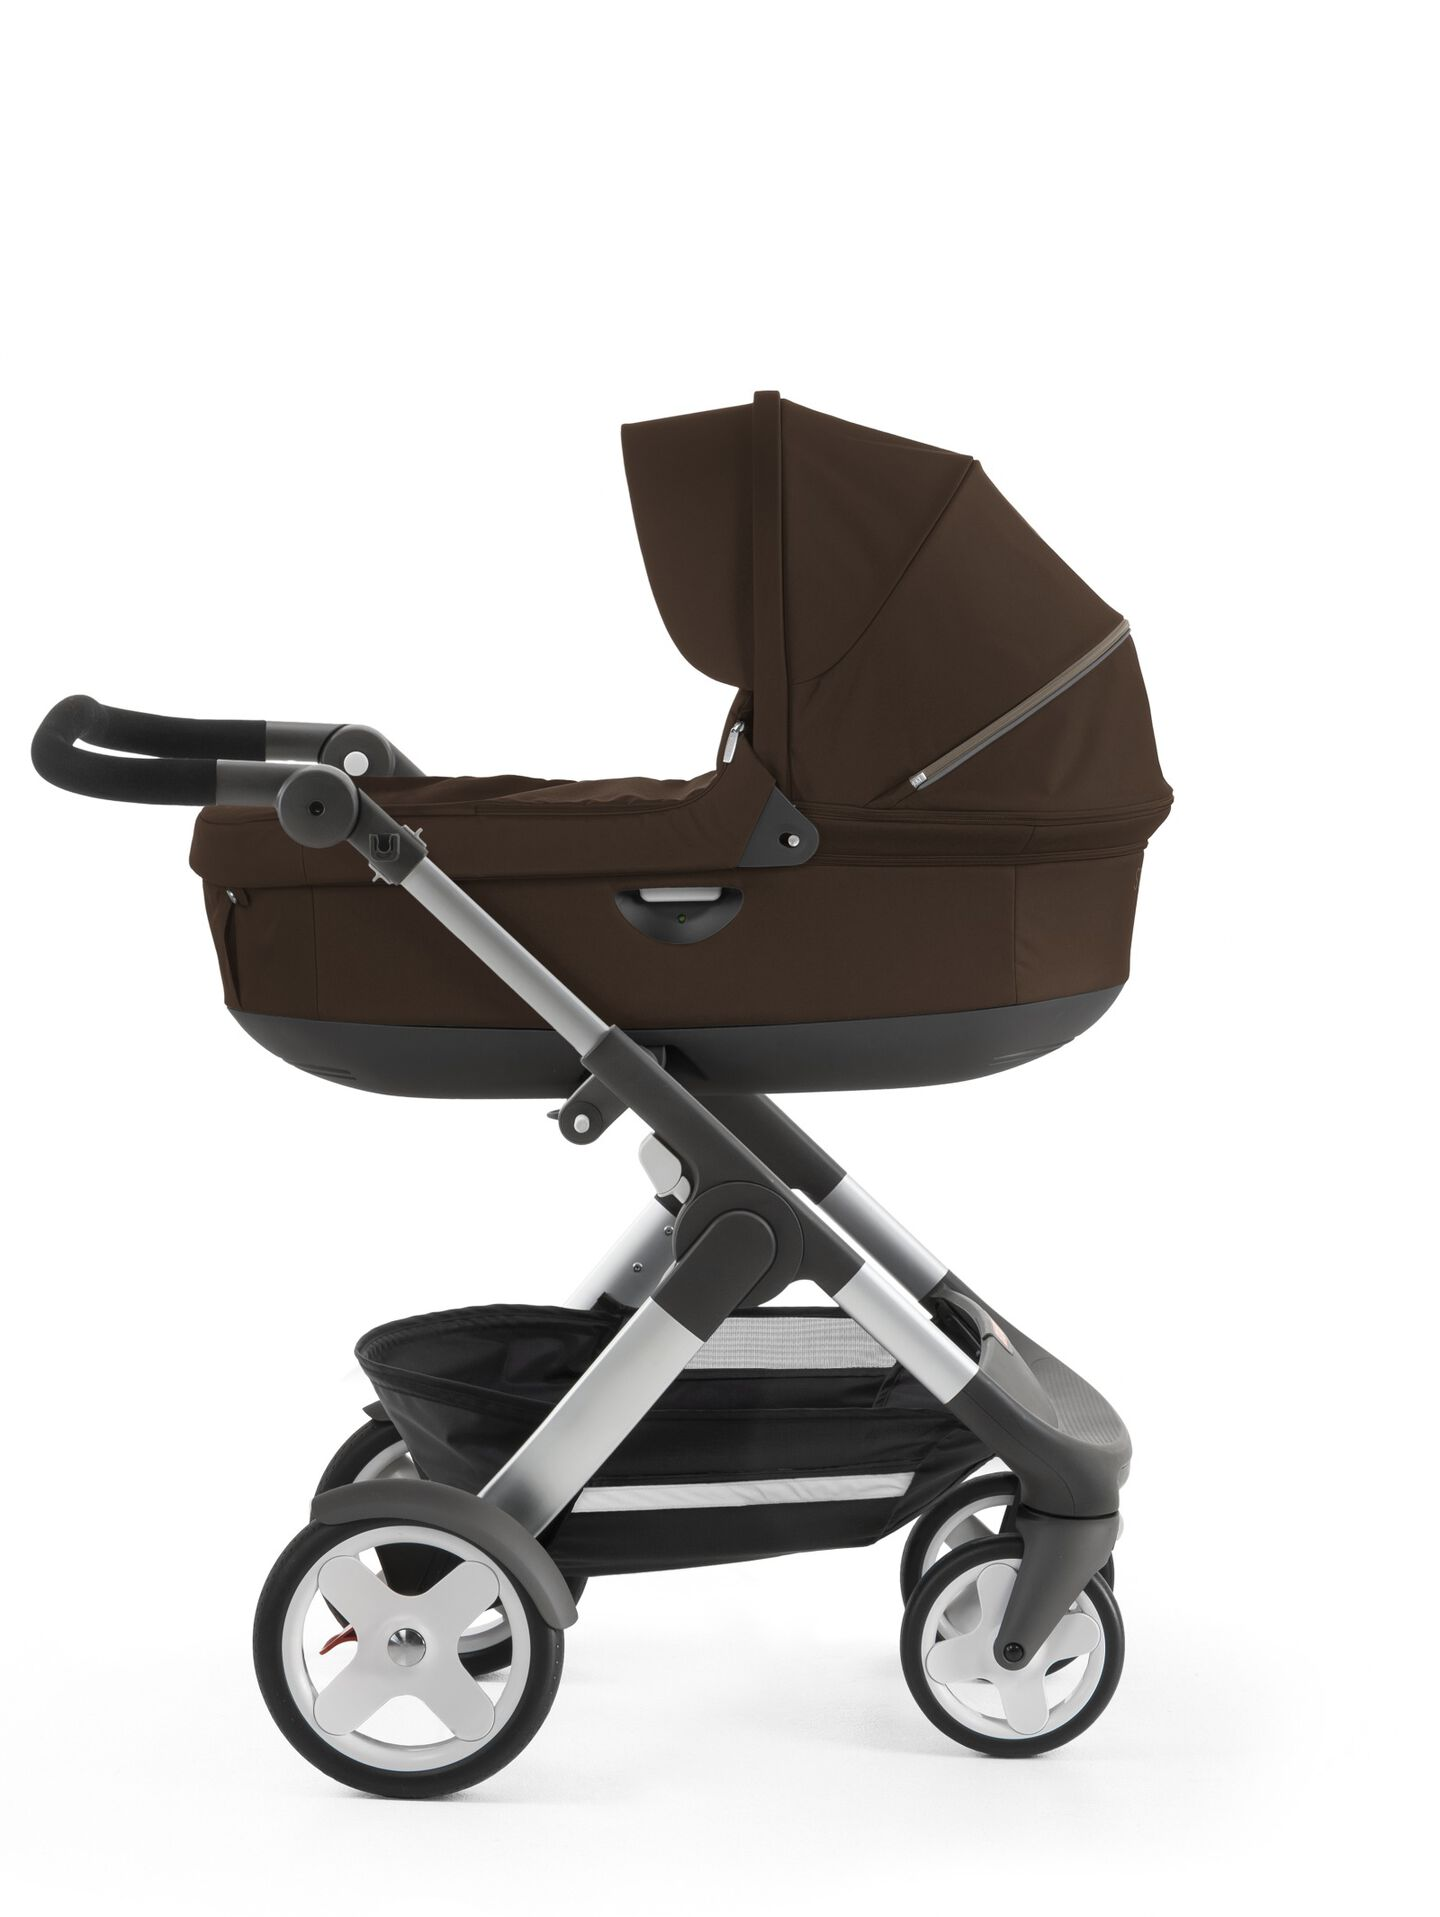 Stokke® Trailz™ with Stokke® Stroller Carry Cot, Brown. Classic Wheels.